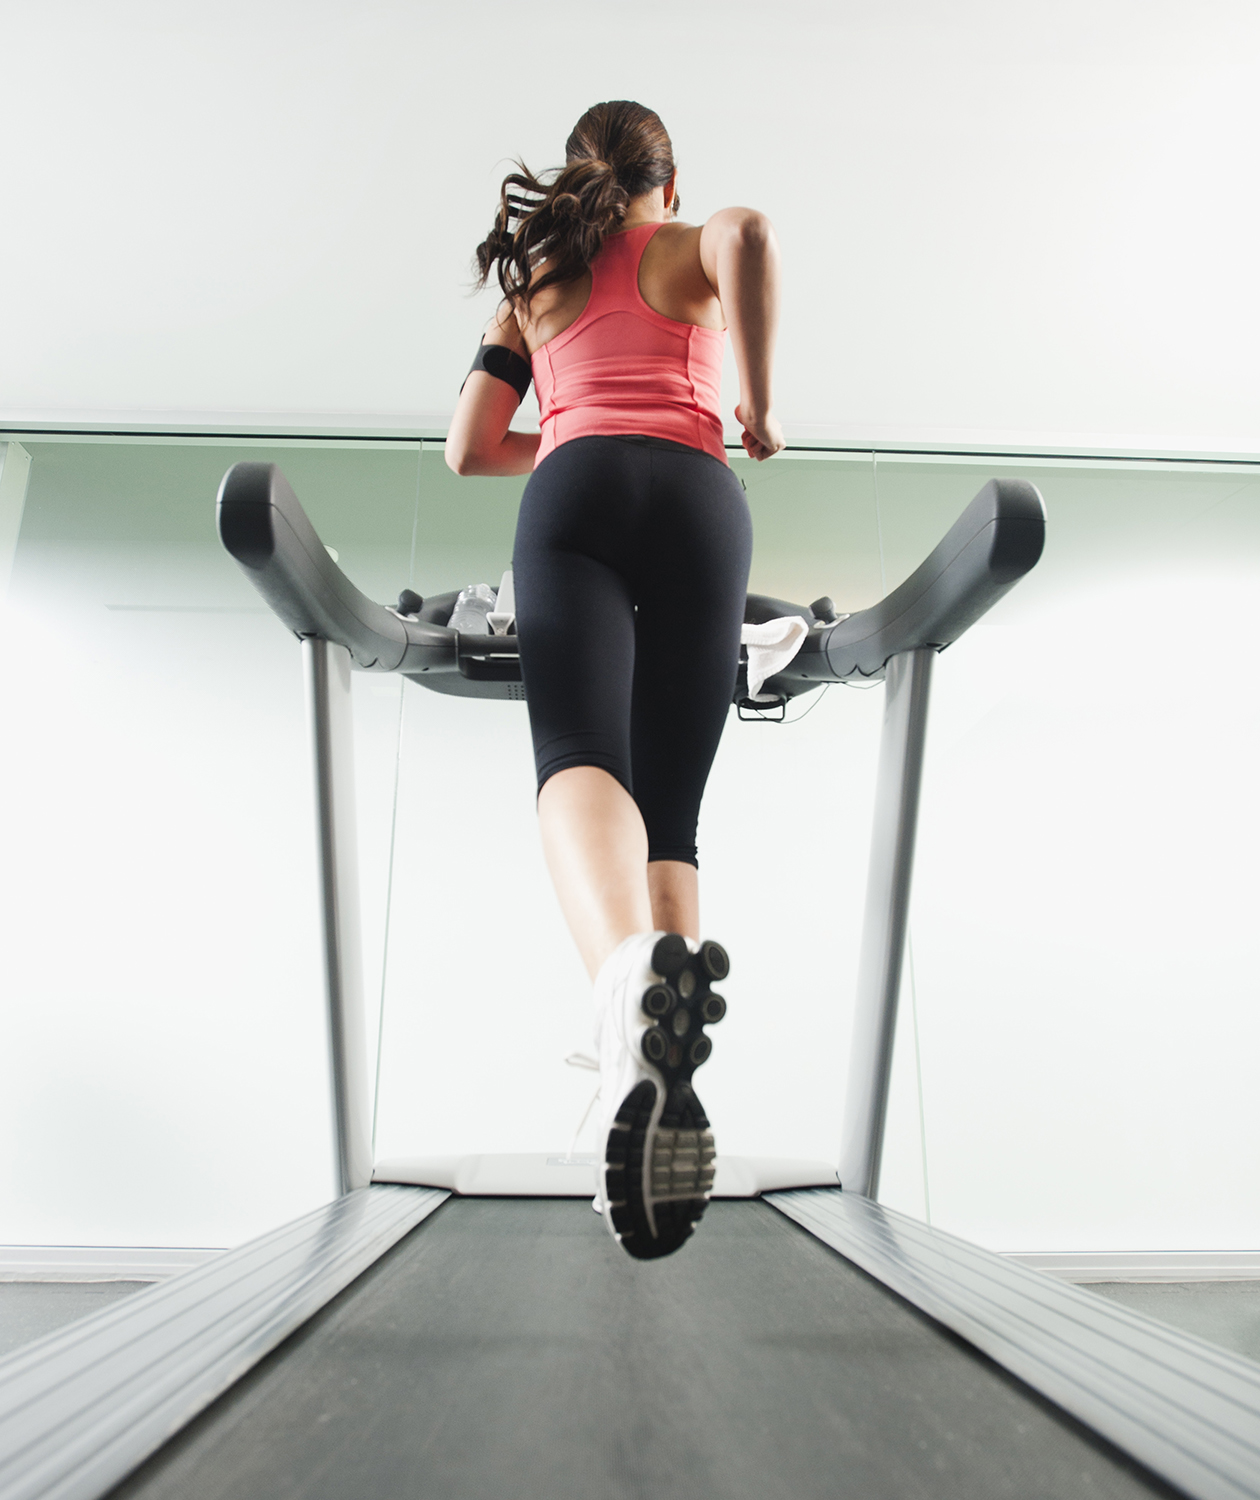 Rear view of woman running on treadmill